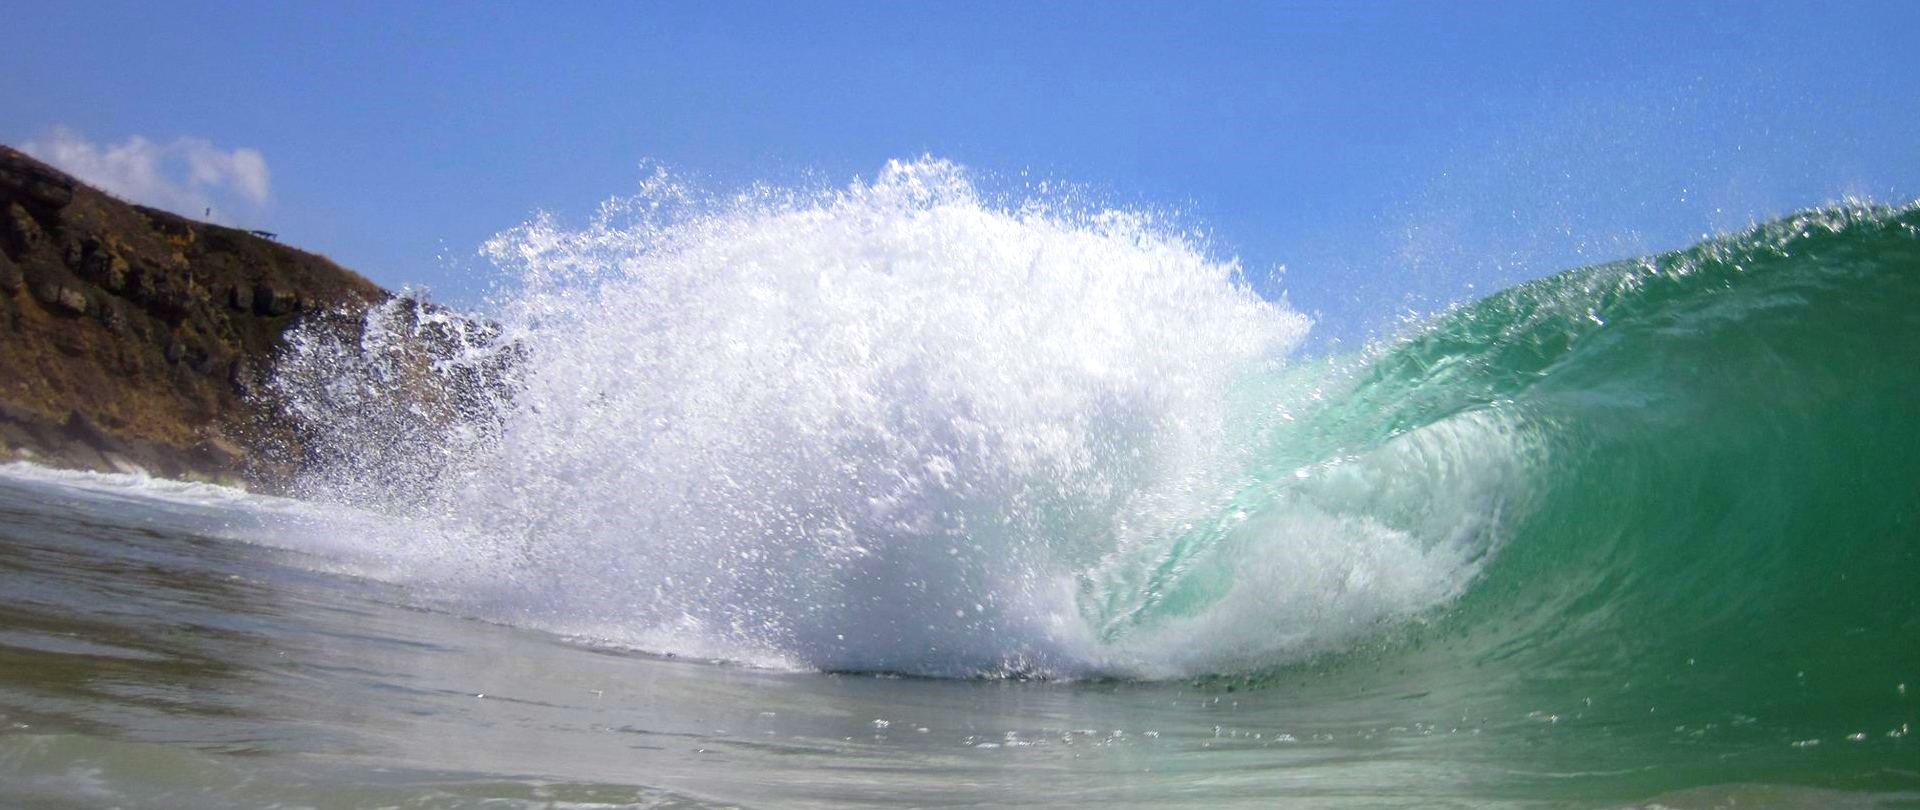 WELCOME TO SAL SURFING TOURS